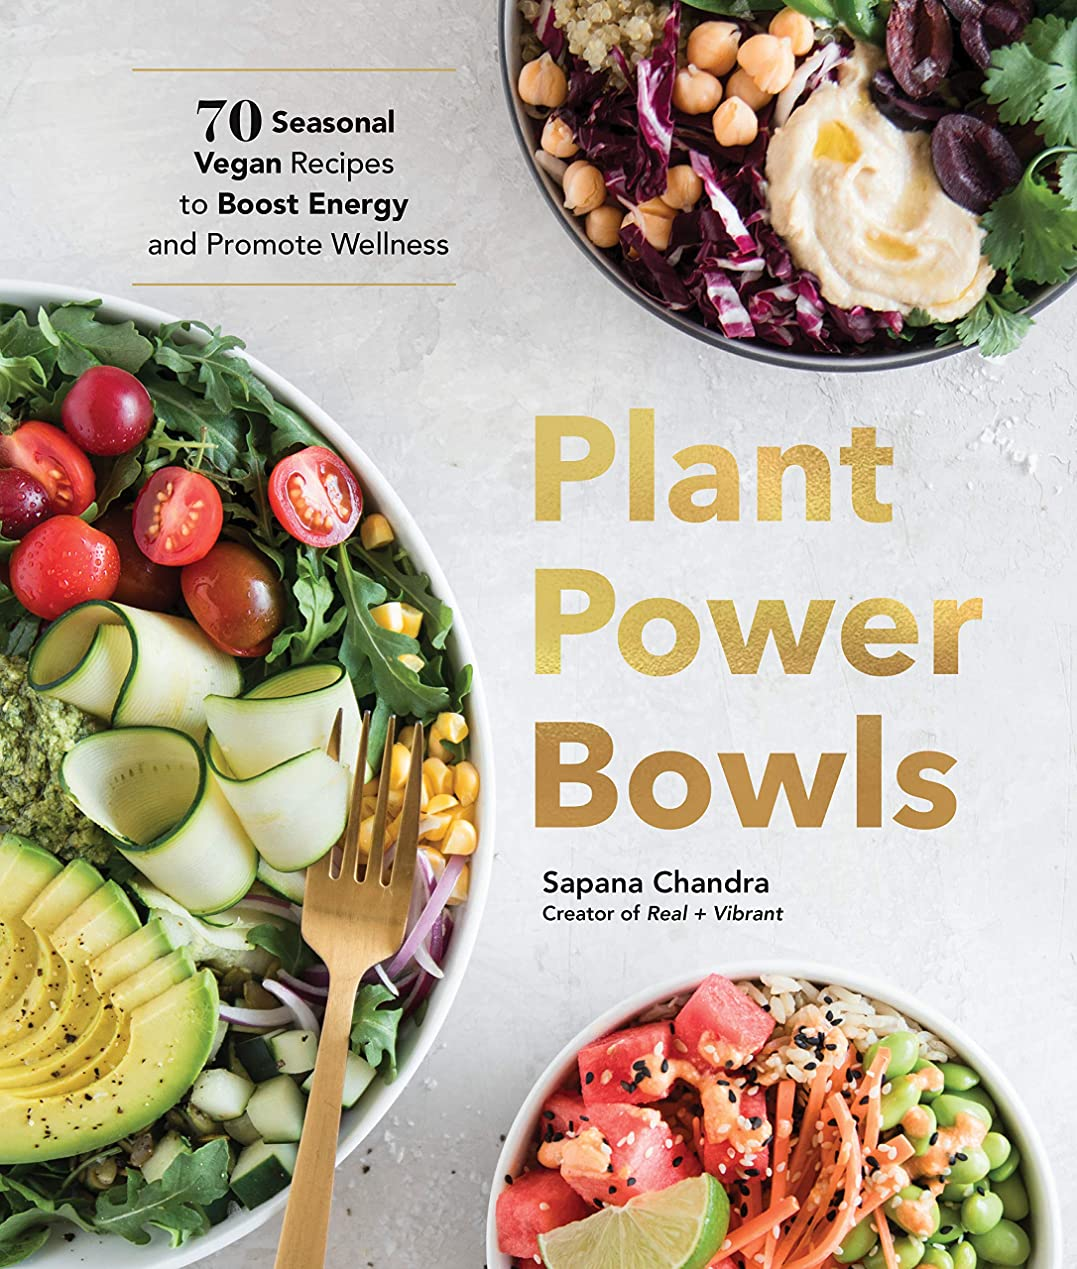 スイング数学的なジョージバーナードPlant Power Bowls: 70 Seasonal Vegan Recipes to Boost Energy and Promote Wellness (English Edition)